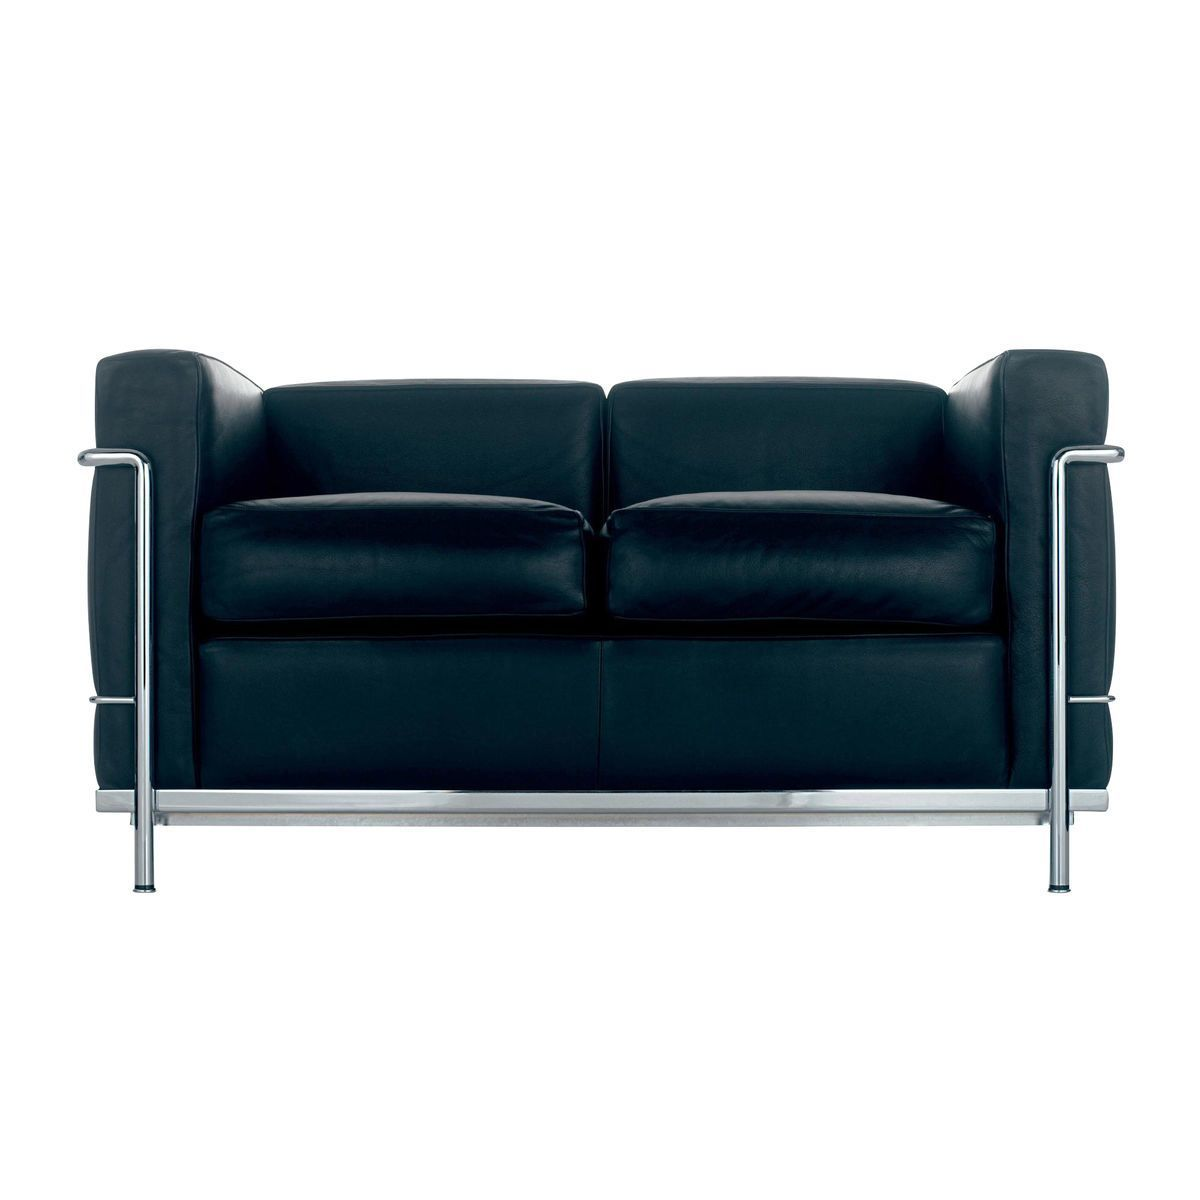 Le corbusier lc2 sofa cassina cassina for Le corbusier lc2